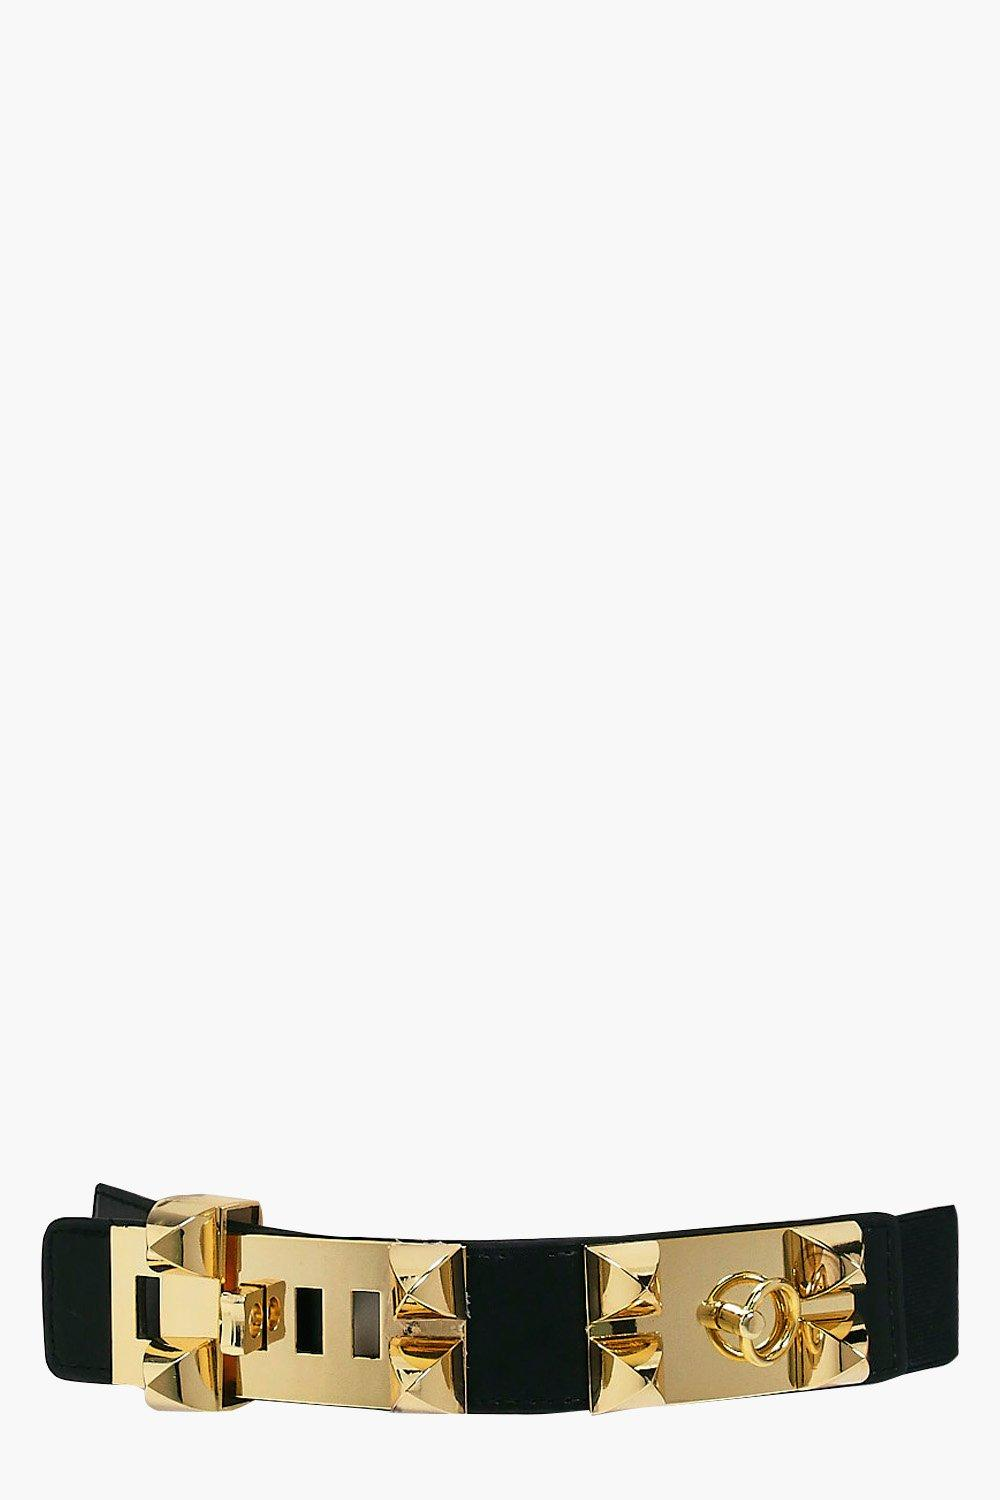 Statement Stud Waist Belt - black - Alisha Stateme